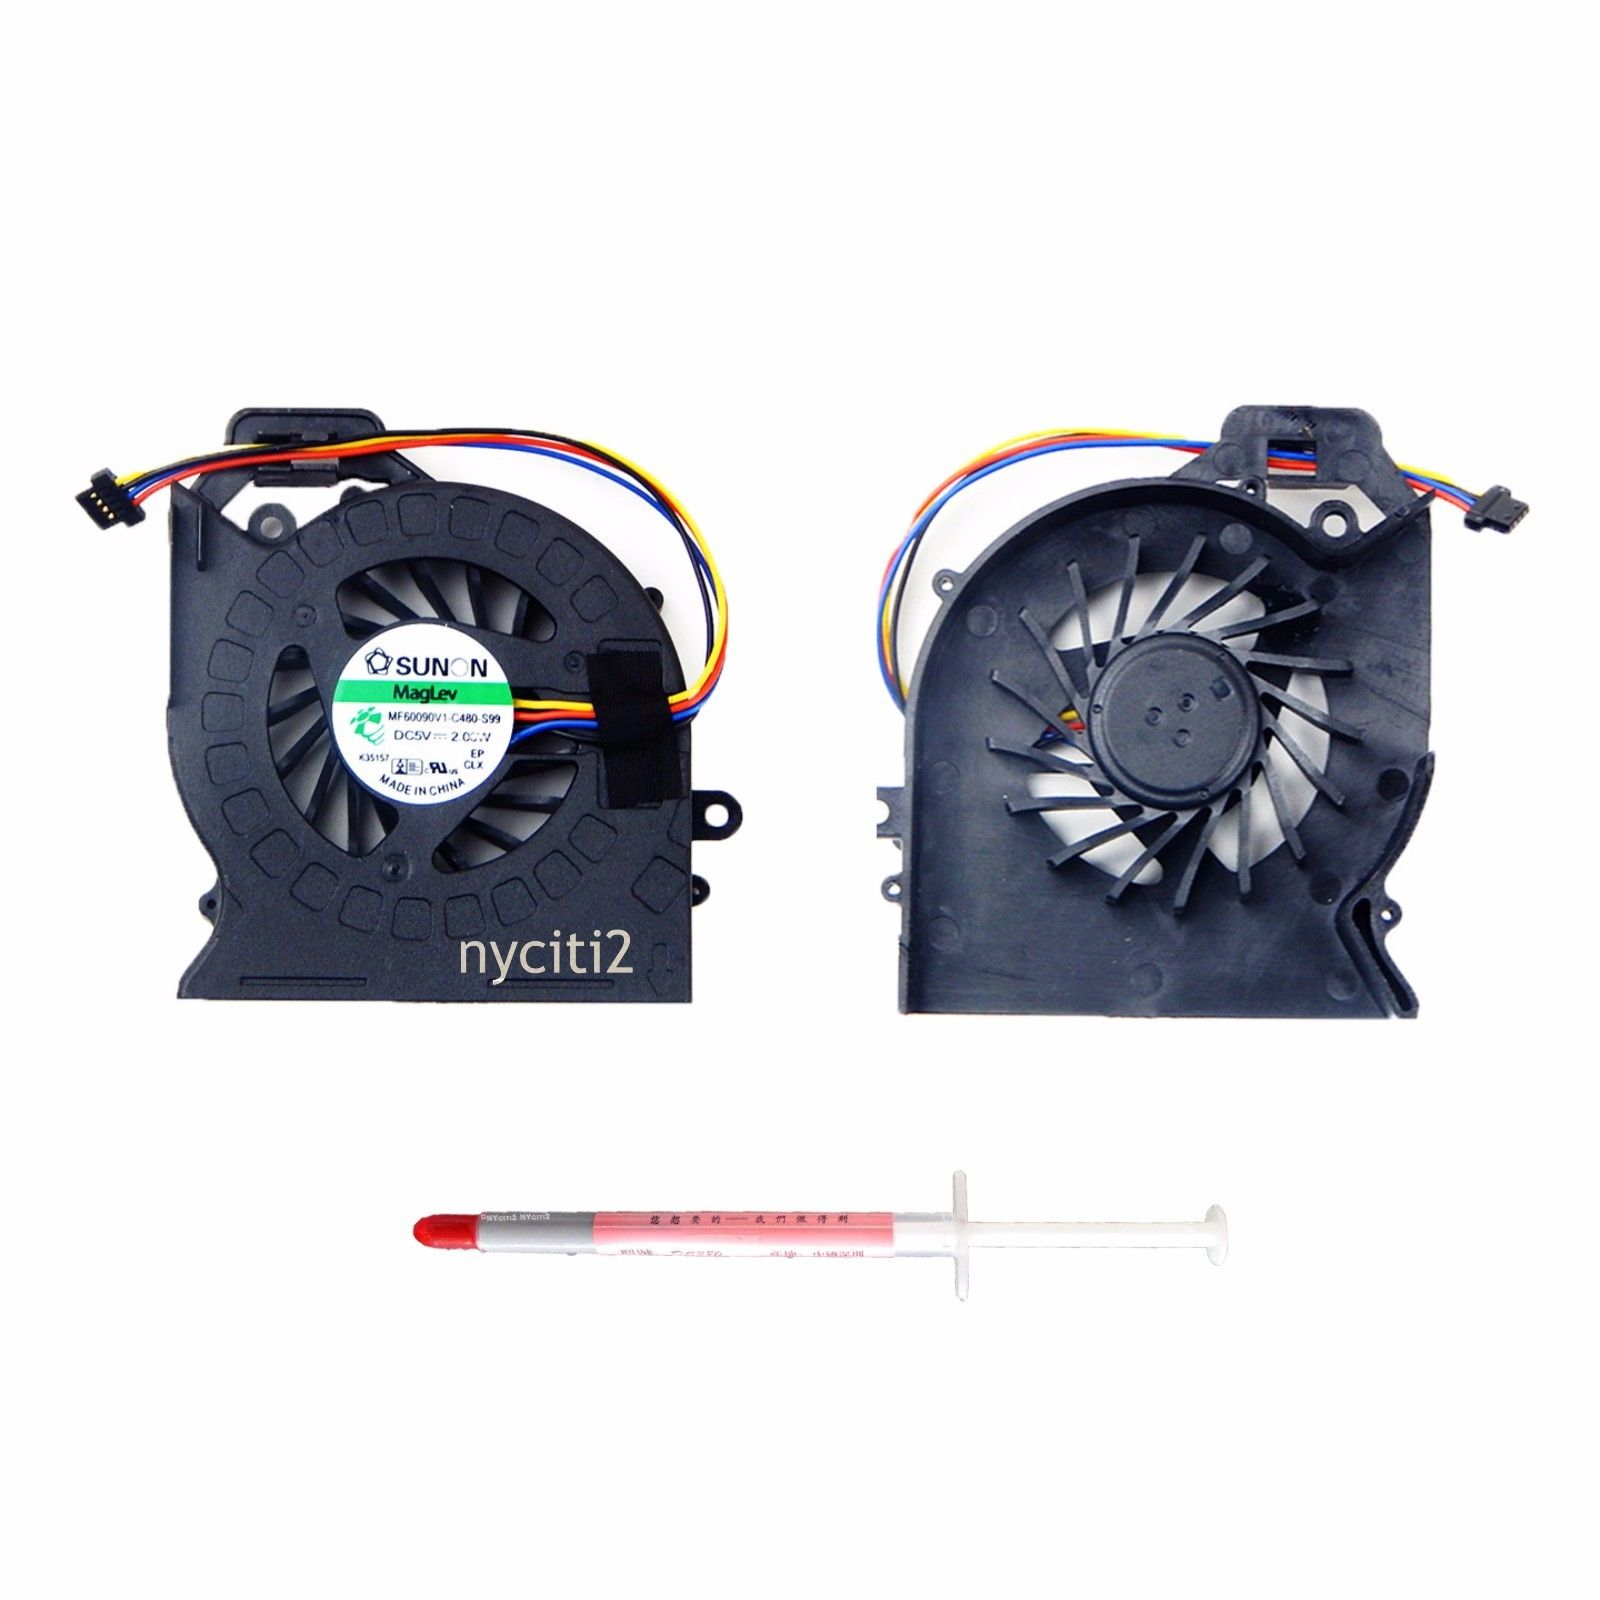 New CPU Fan for HP Pavilion dv6-6153cl compatible with model P/N 650797-001